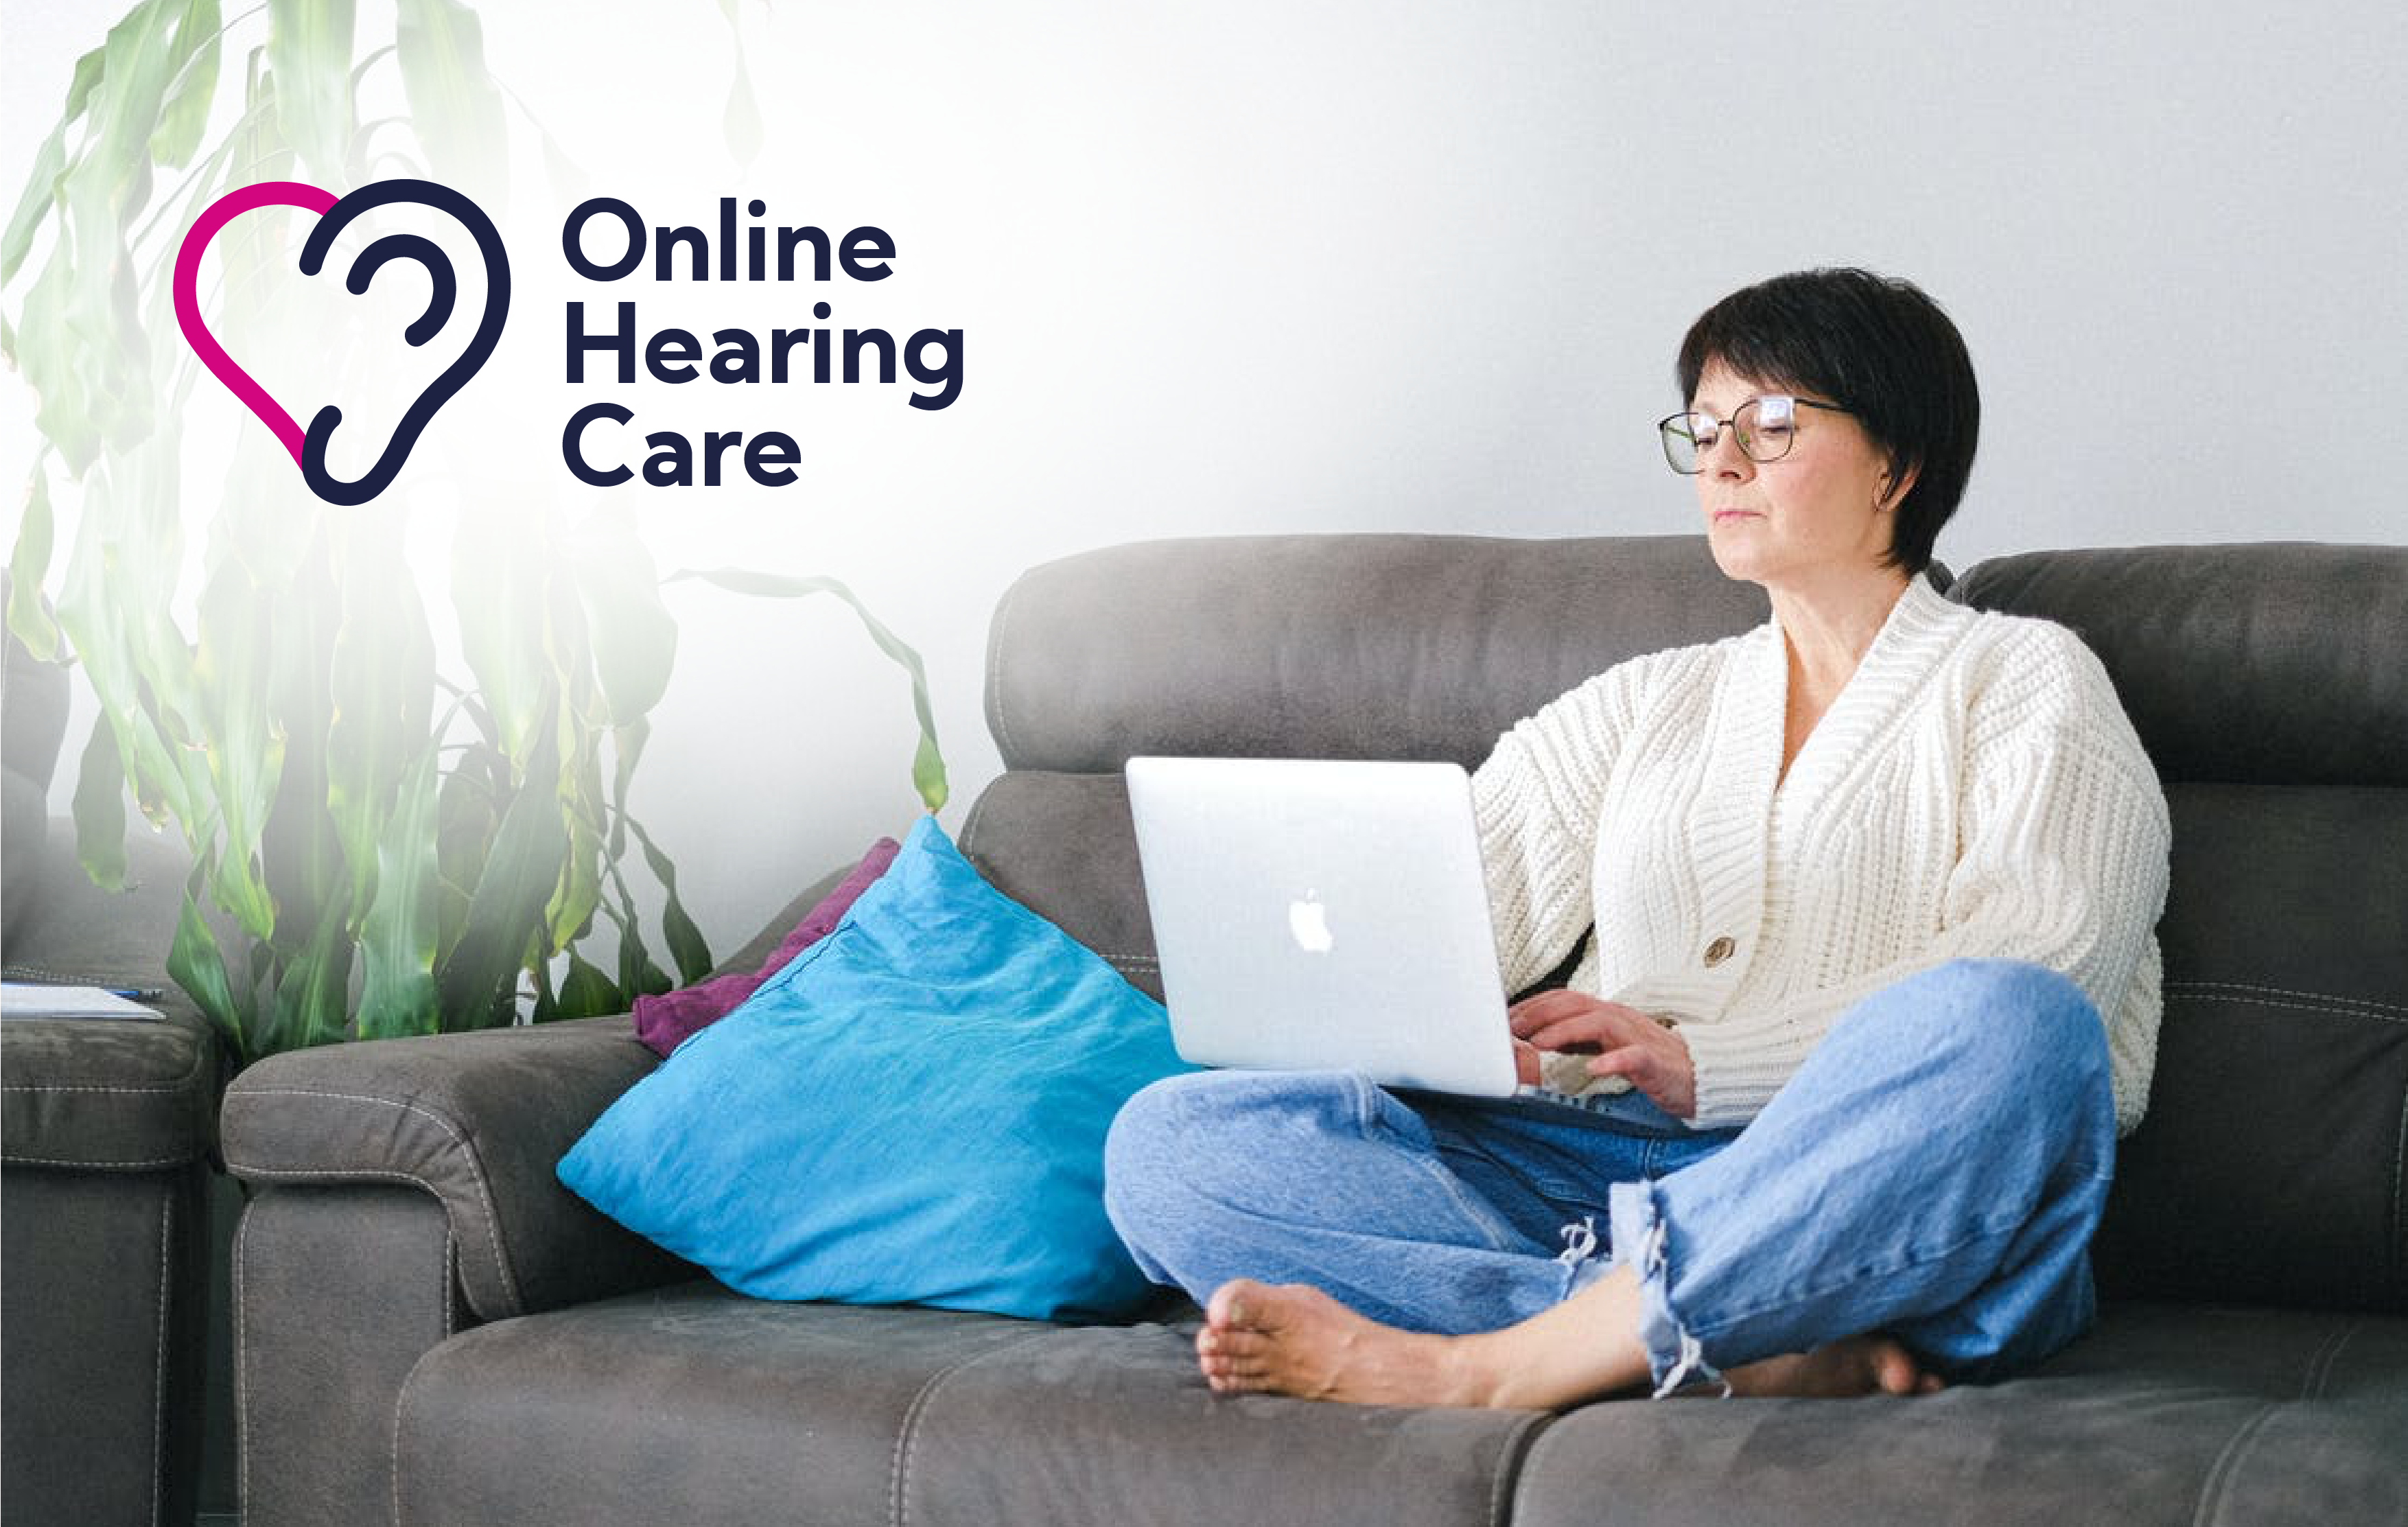 Online hearing care logo